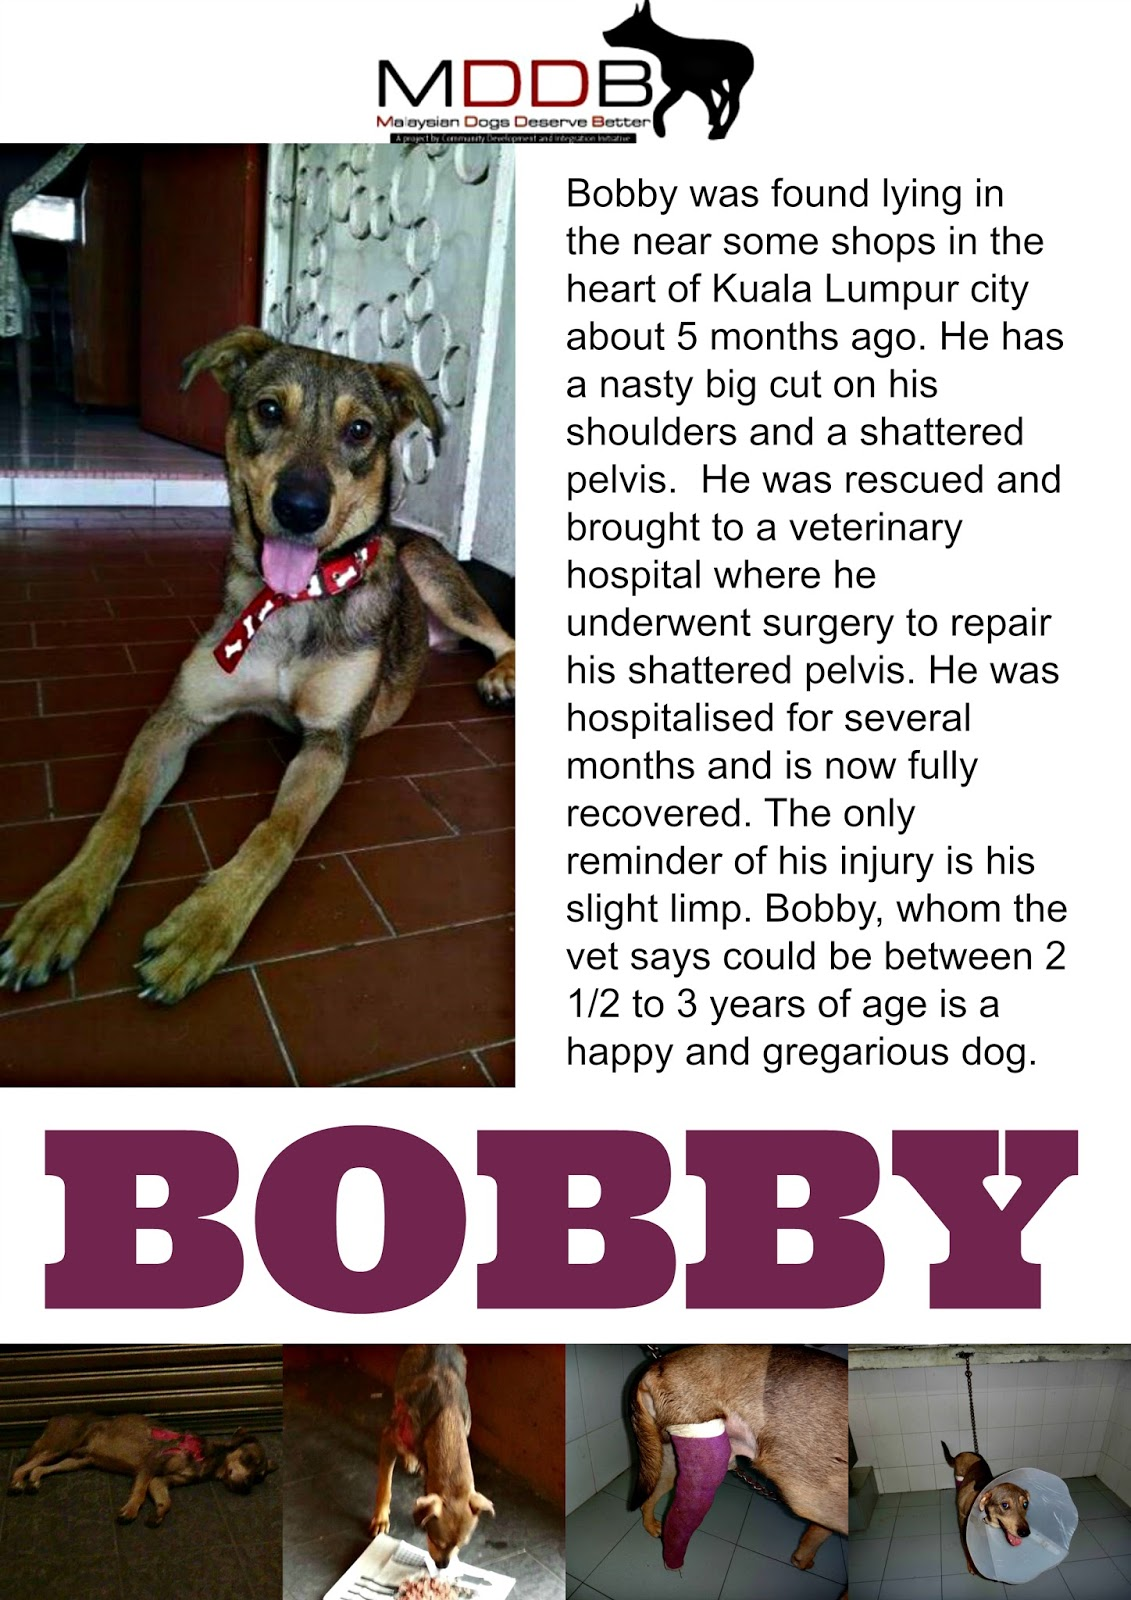 international foundation bobby blue adopted